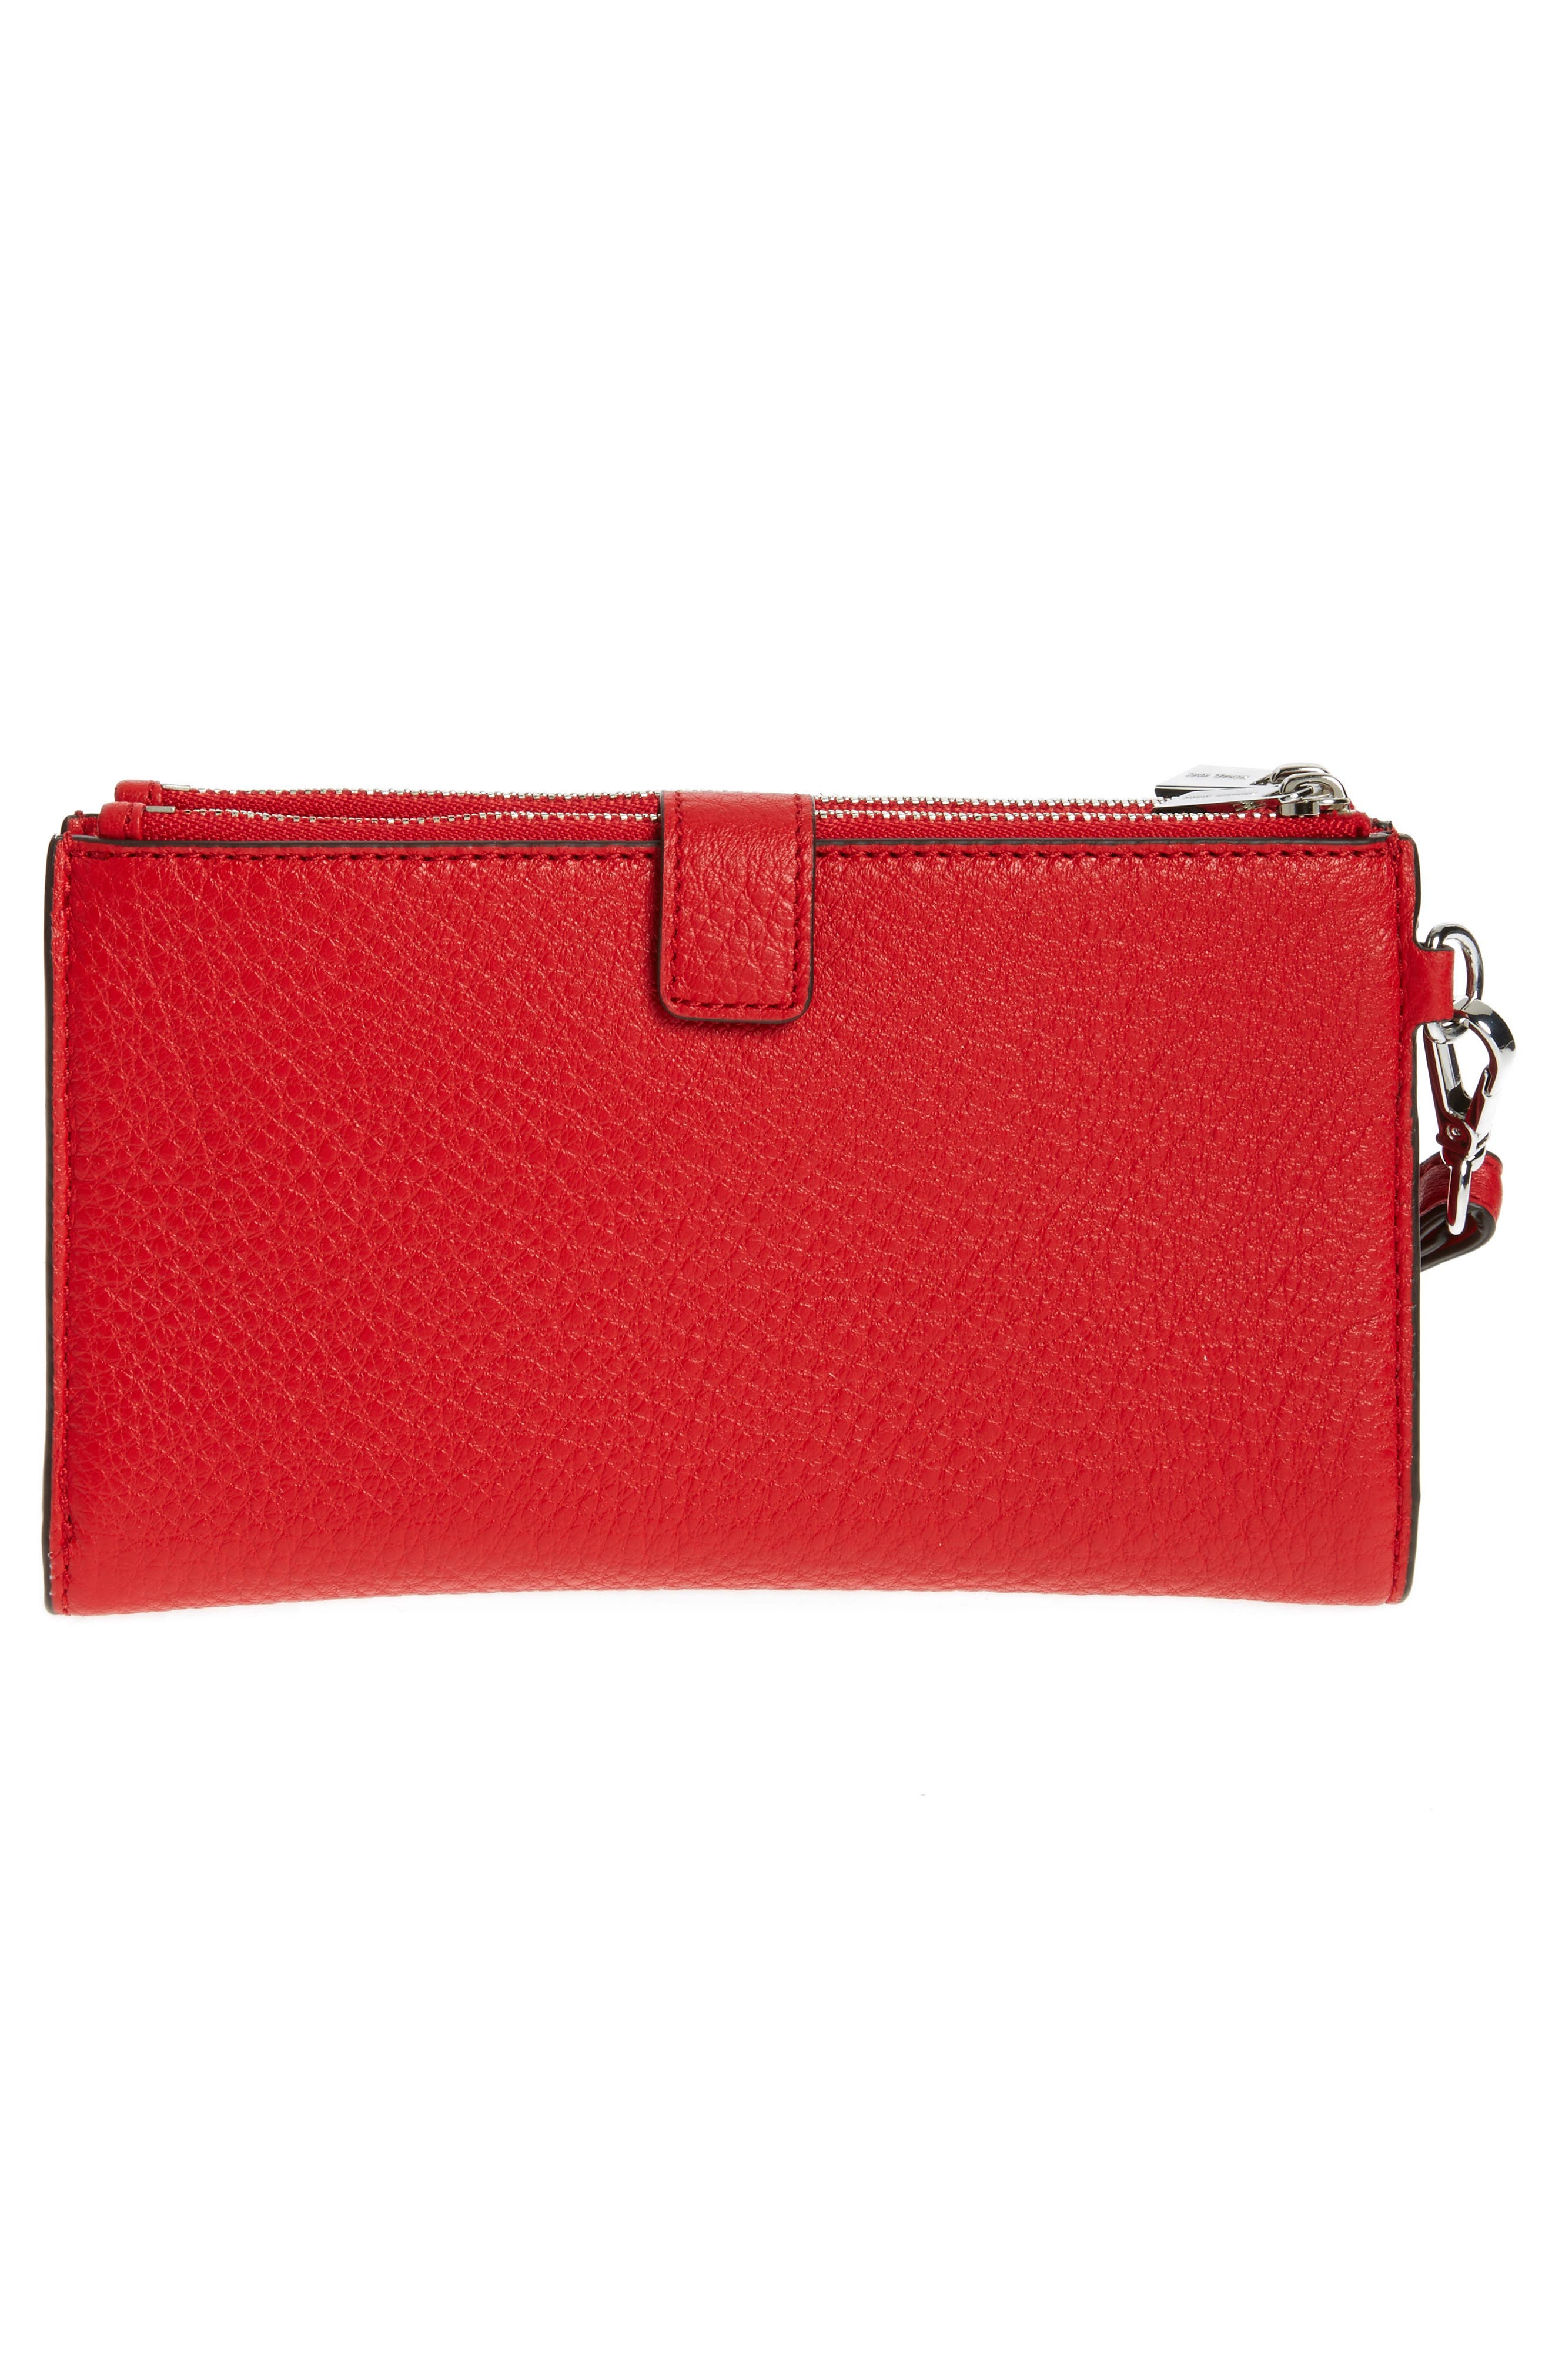 Adele Leather Wristlet,                             Alternate thumbnail 40, color,